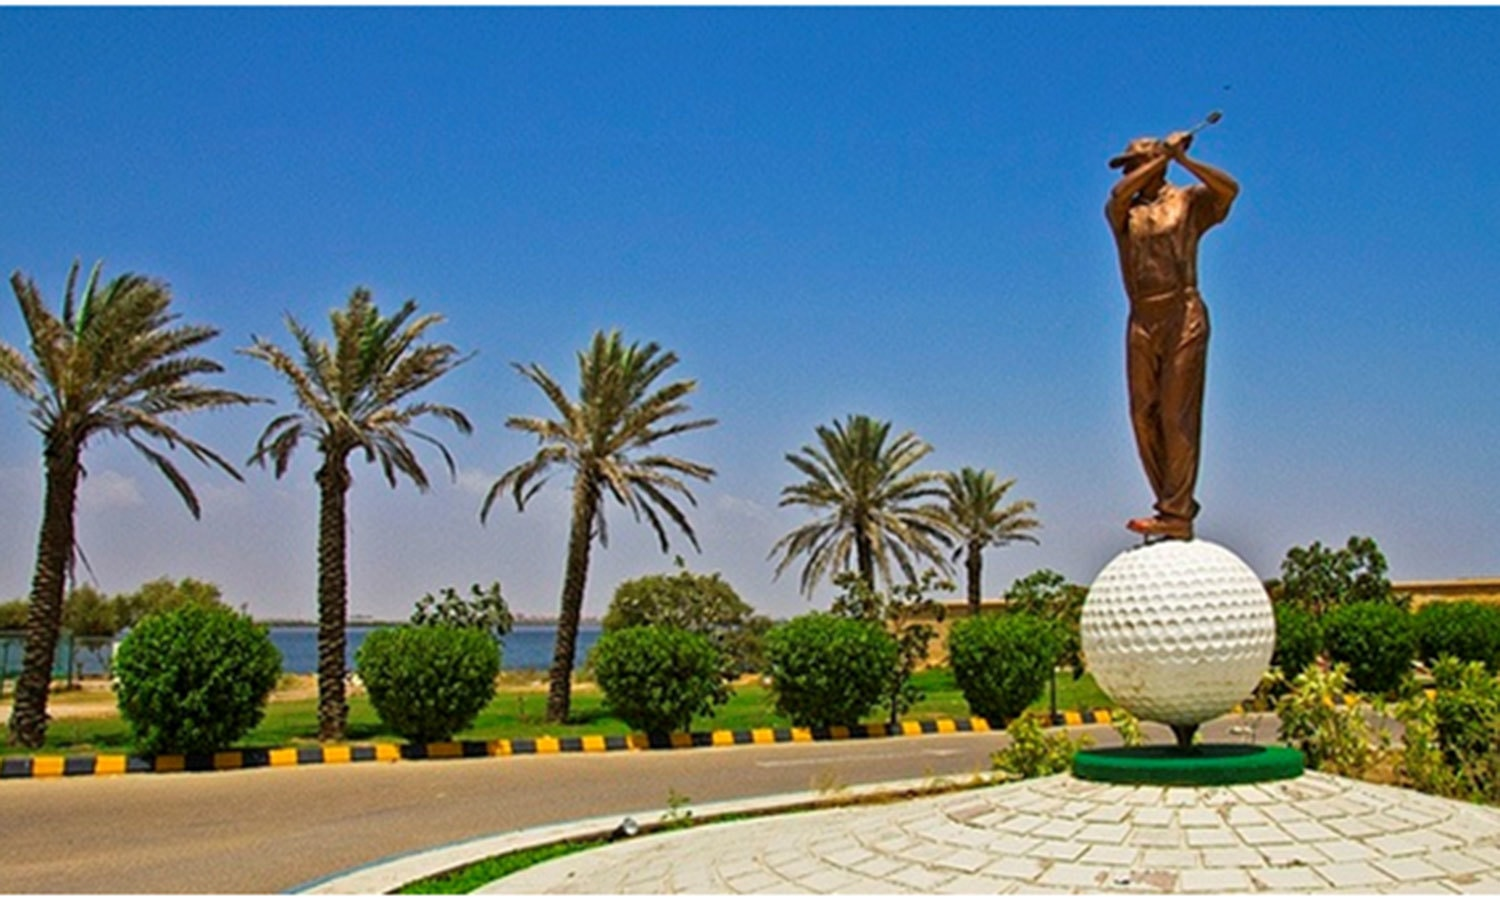 Entrance of the DHA Golf Club.